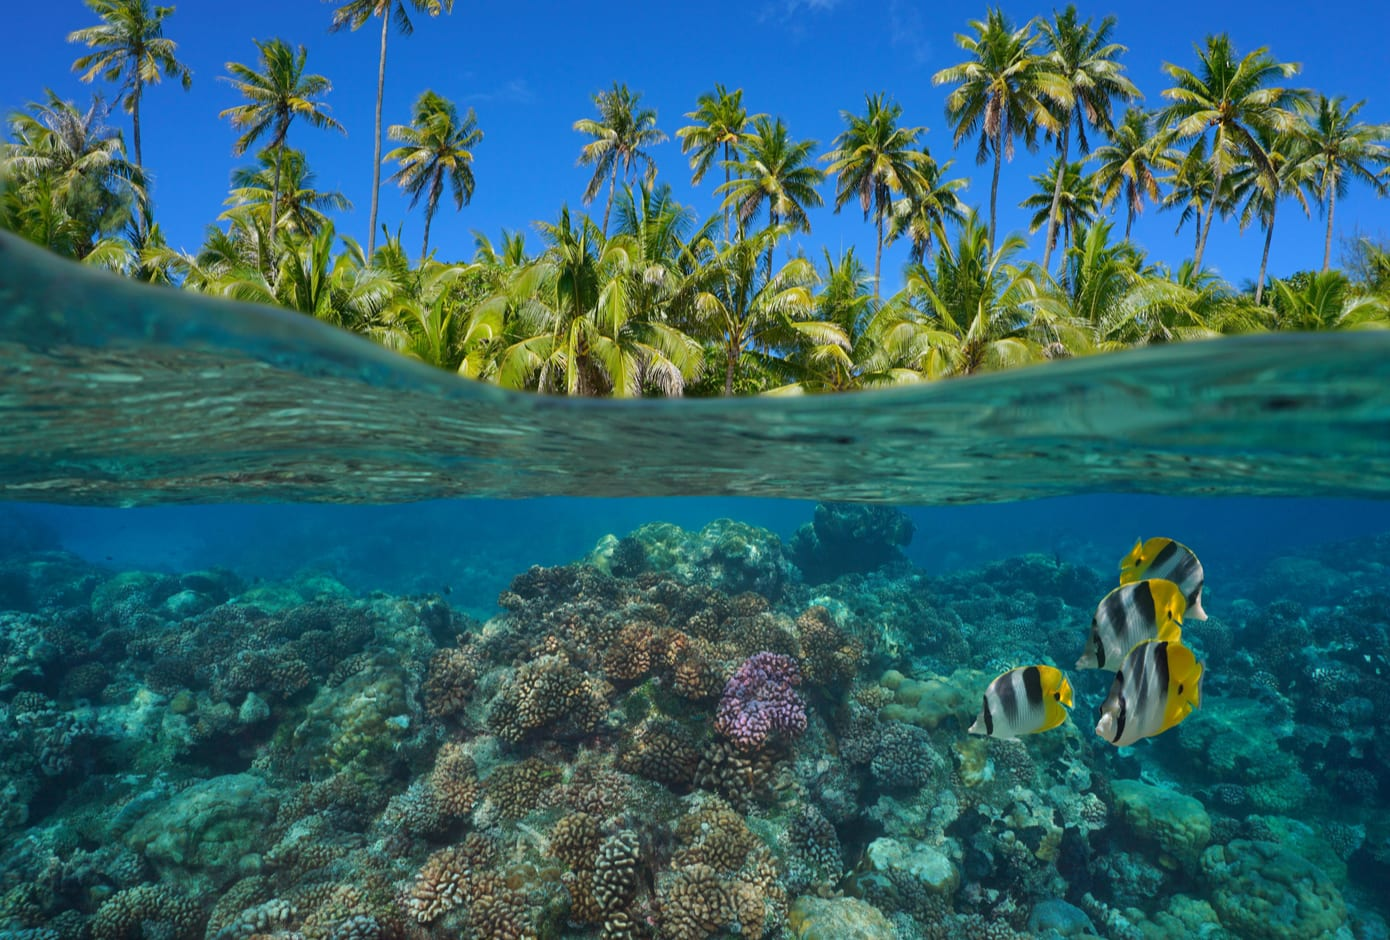 Coral reef with tropical fish underwater in French Polynesia, Pacific Ocean, Oceania